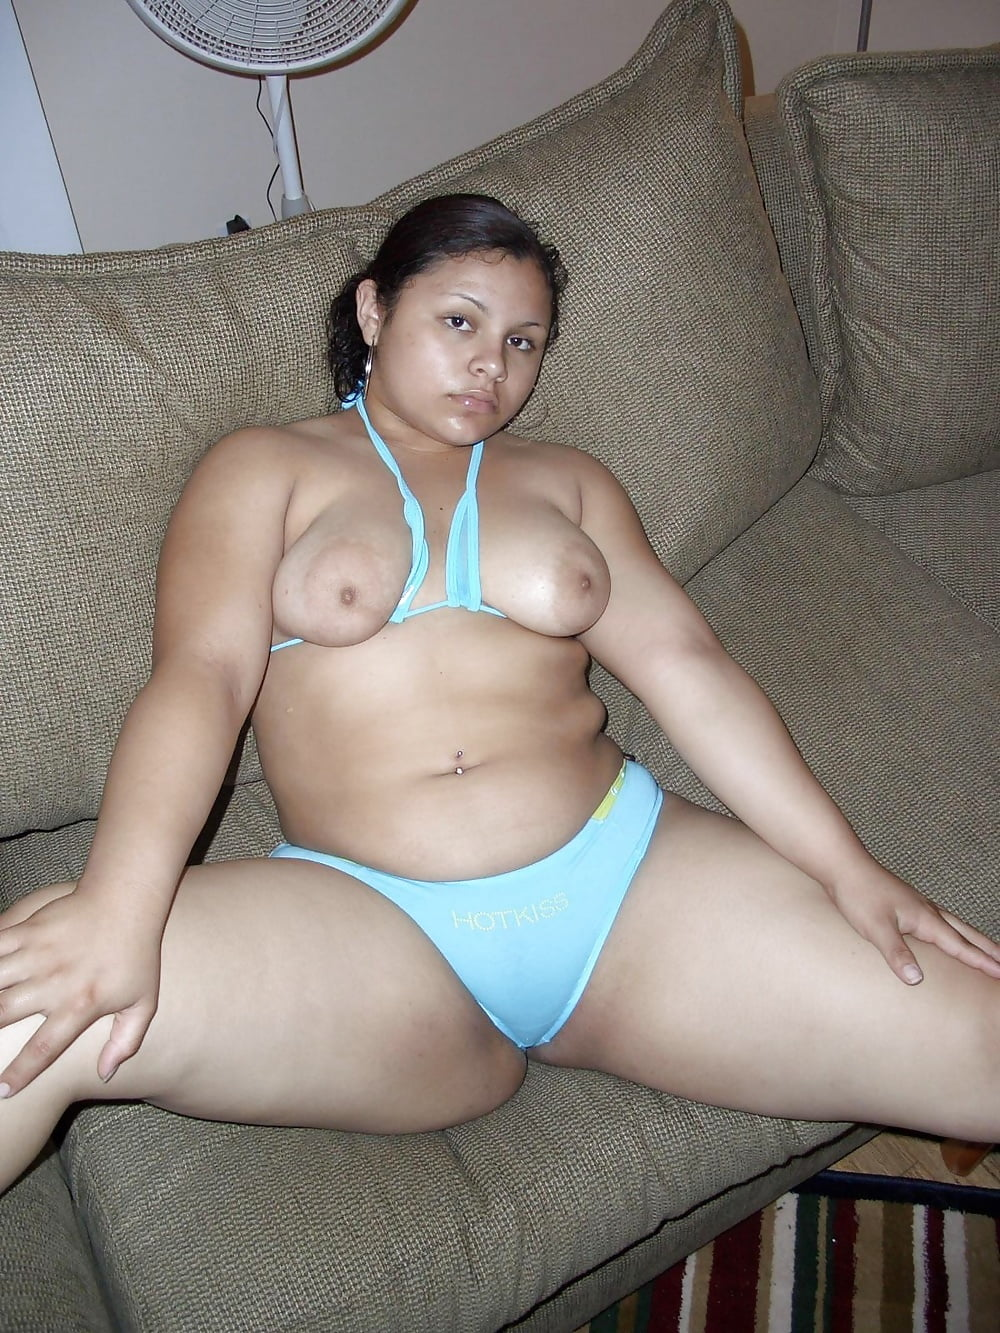 Hairy bbw latina playing with herself